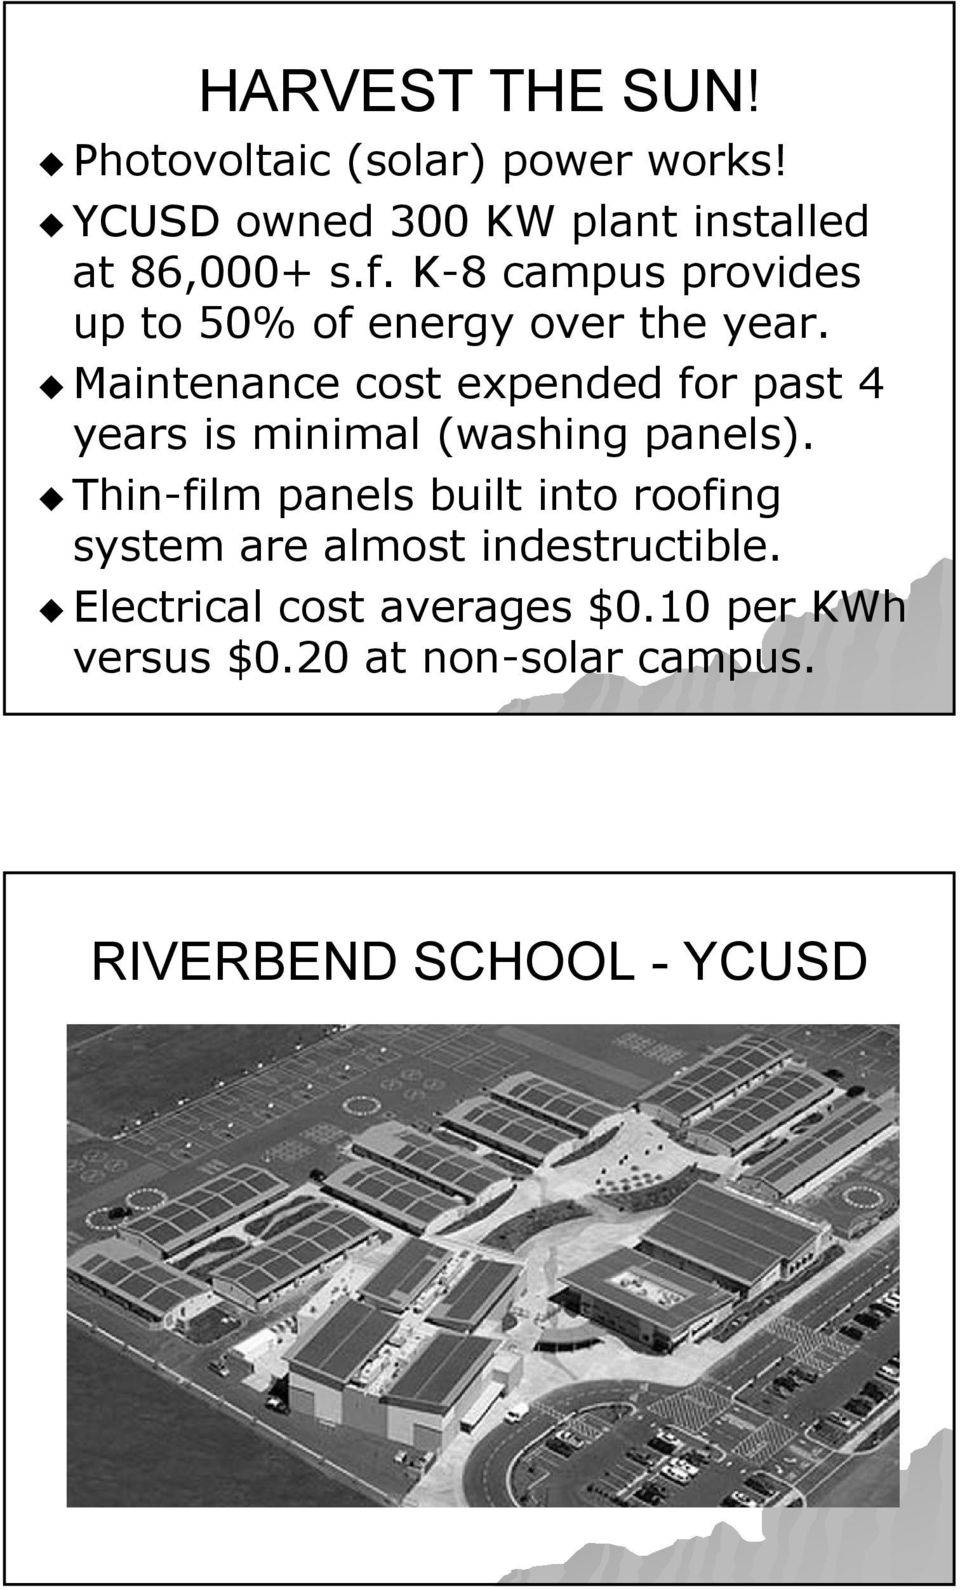 Maintenance cost expended for past 4 years is minimal (washing panels).